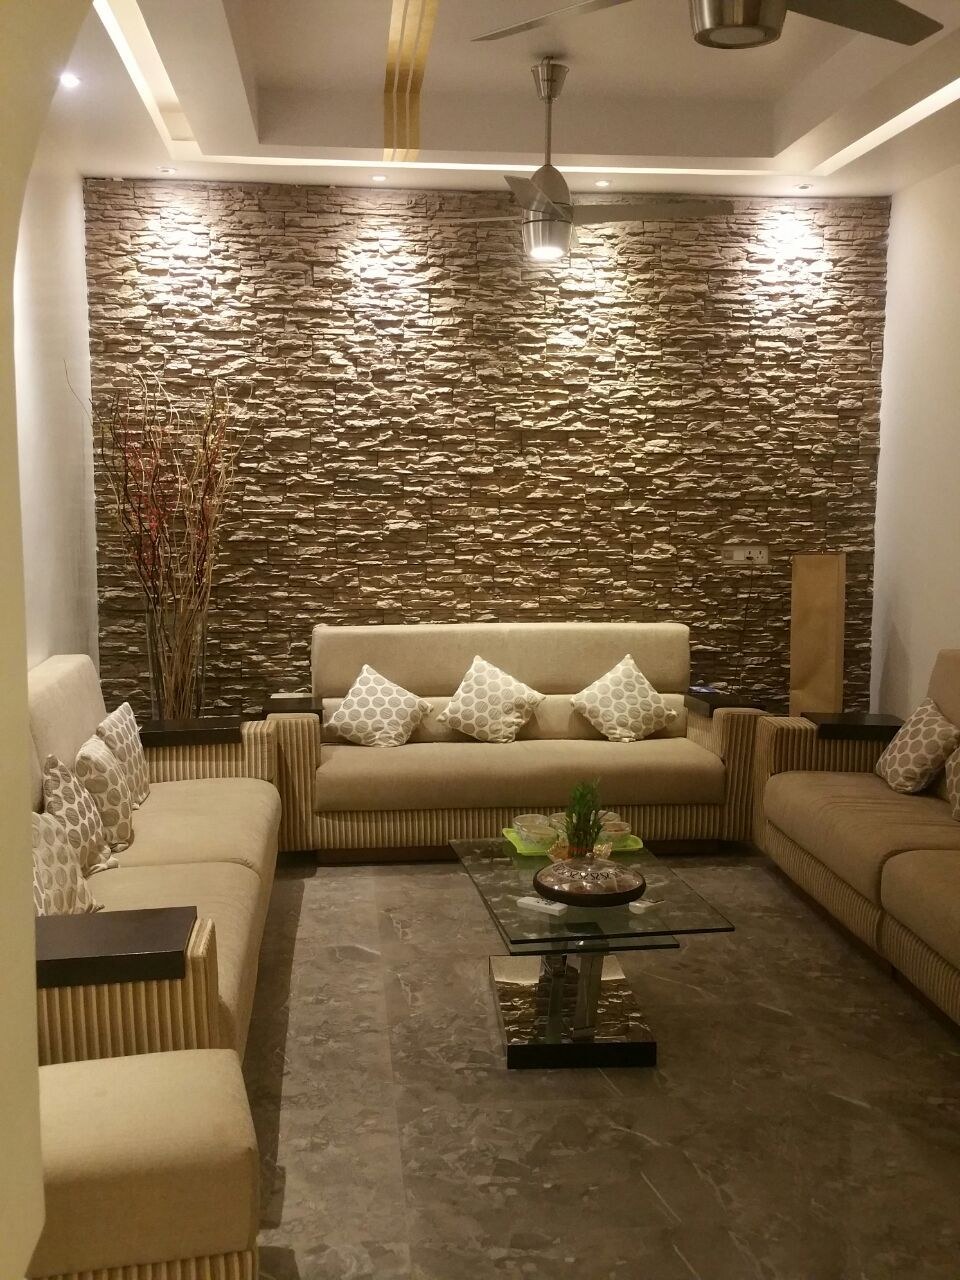 Lights Pointing Down At Rock Wall Living Room Design Modern